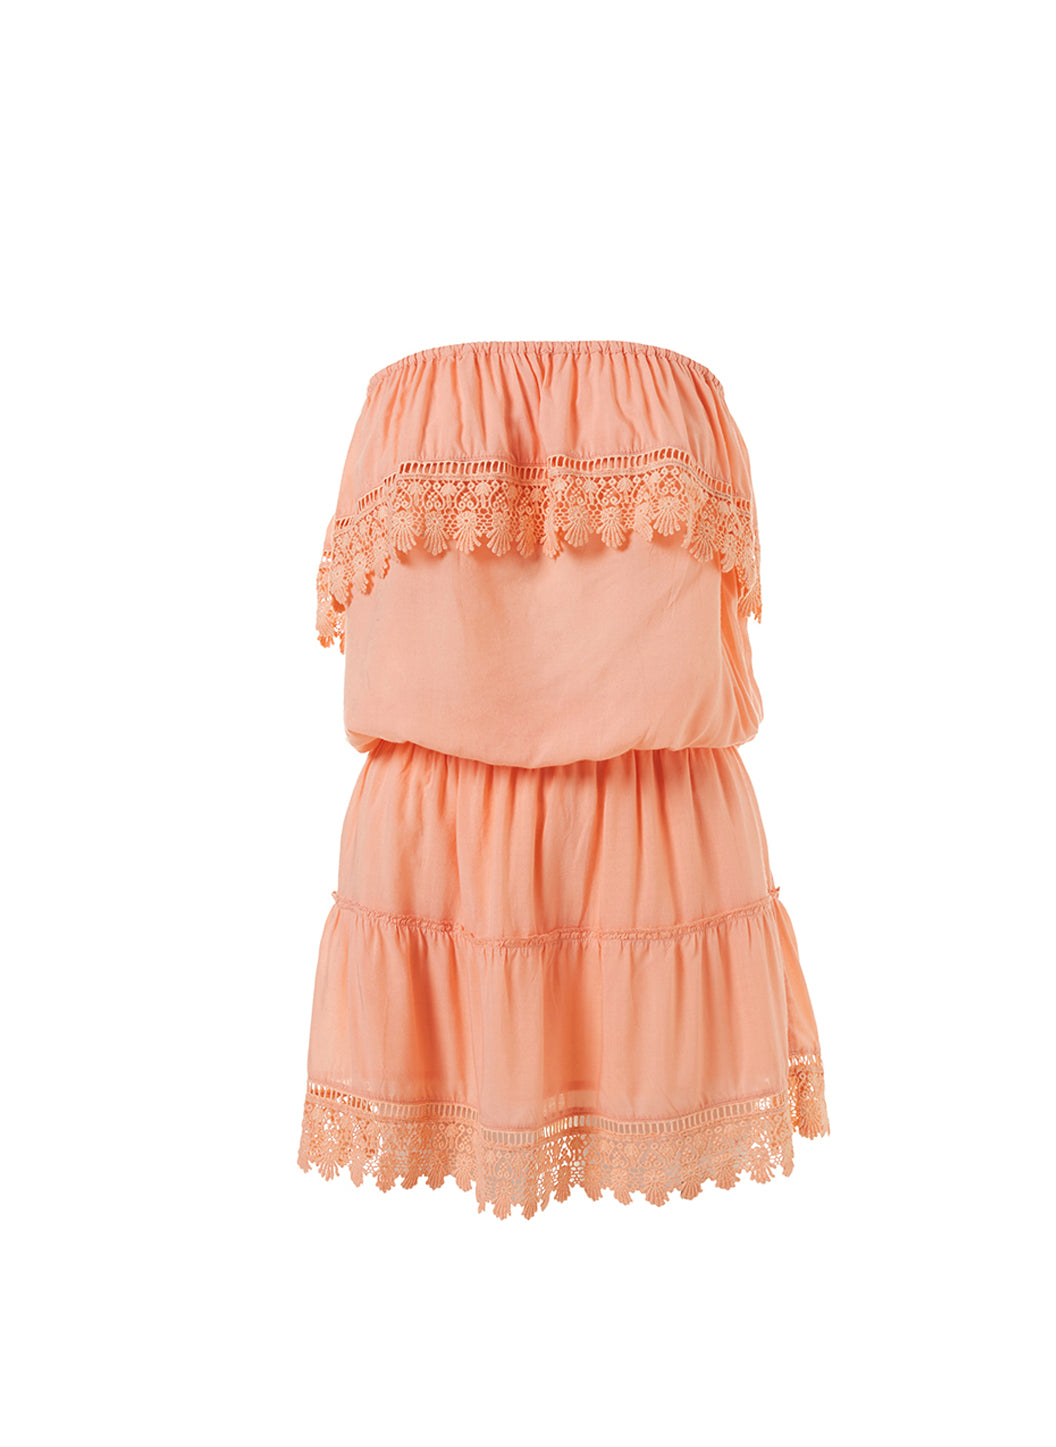 Joy Mango Bandeau Embroidered Frill Short Dress - Melissa Odabash Dresses & Kaftans